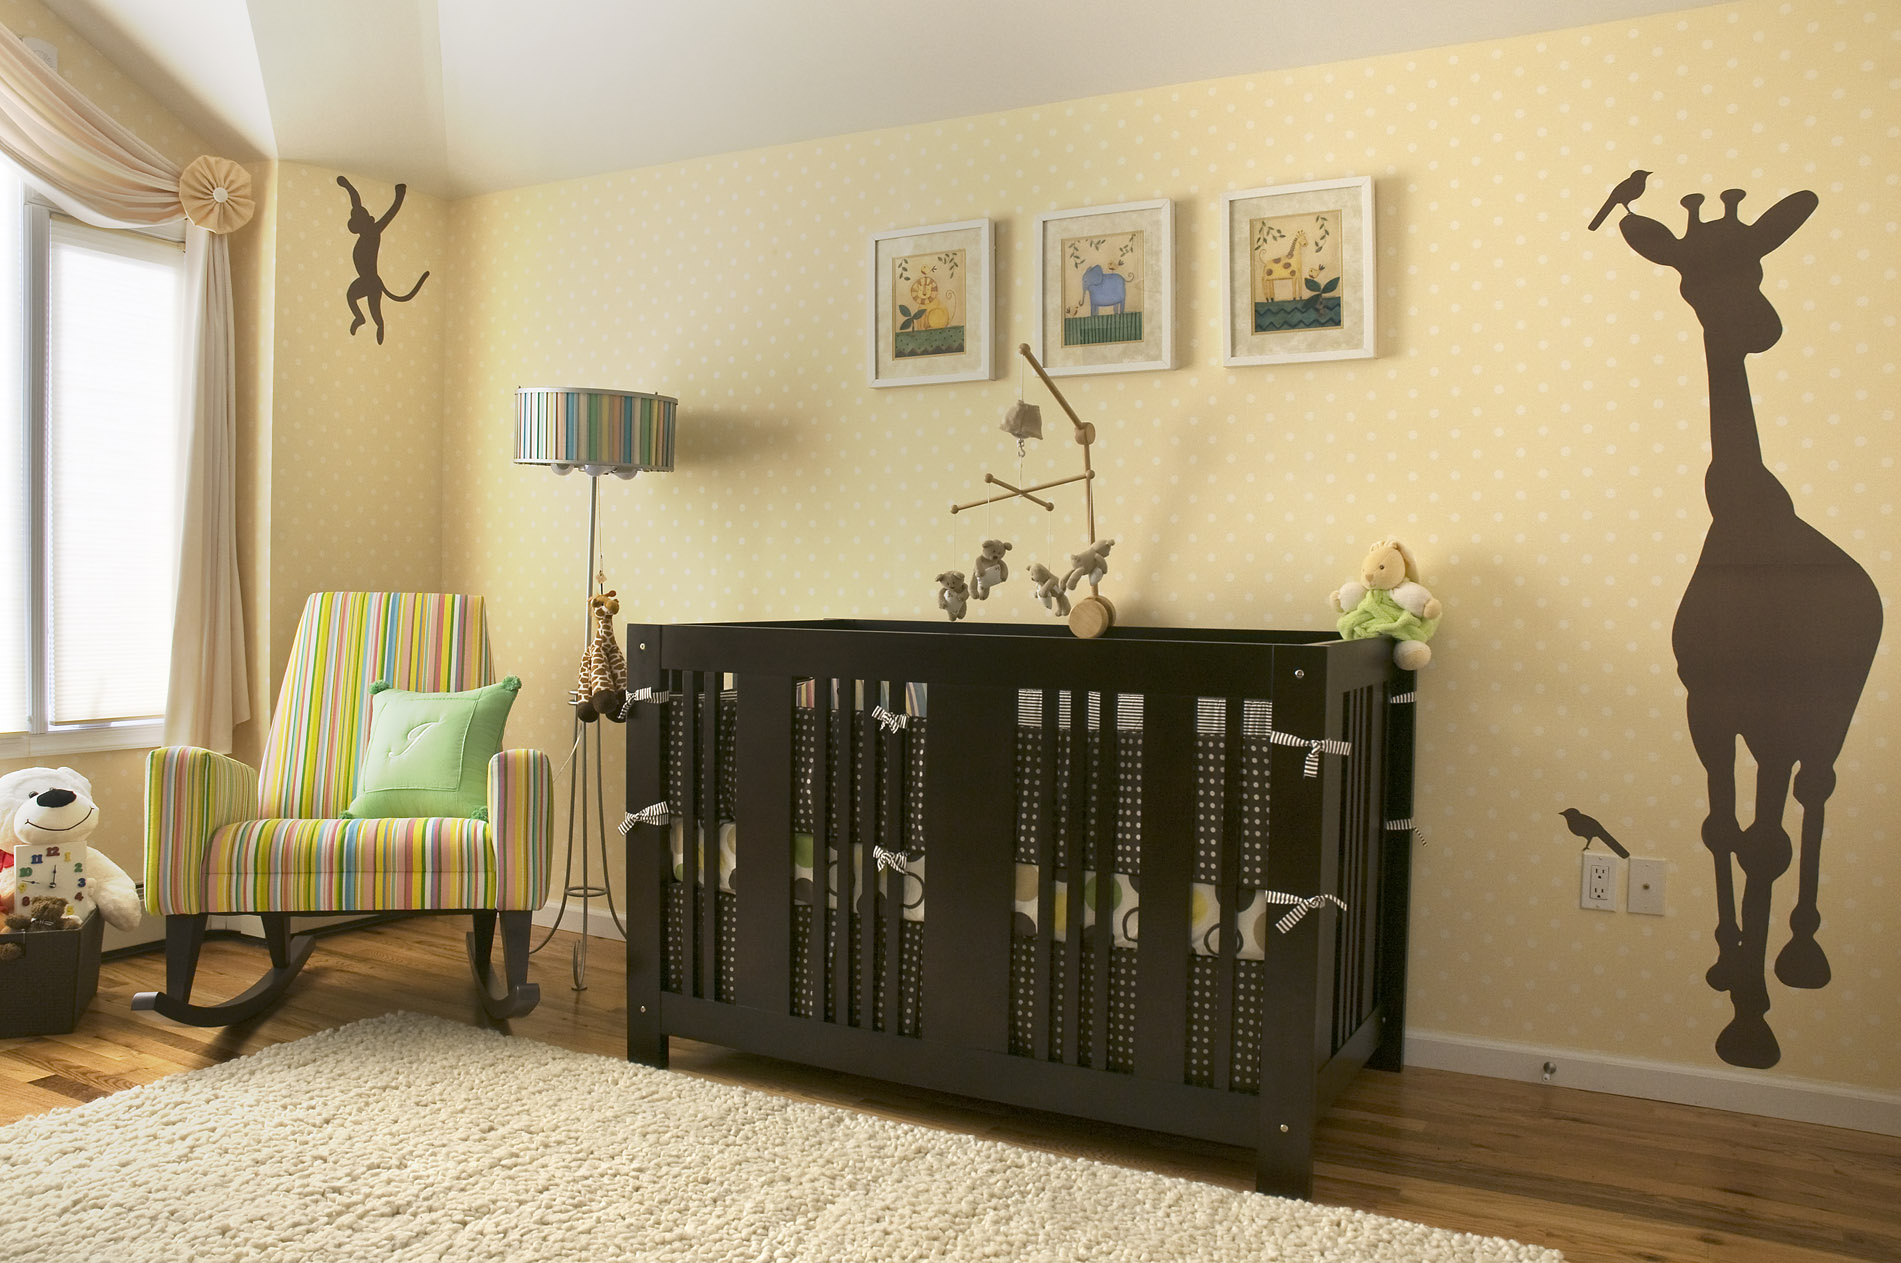 How to decorate babies and moms heaven | Interior Design Paradise